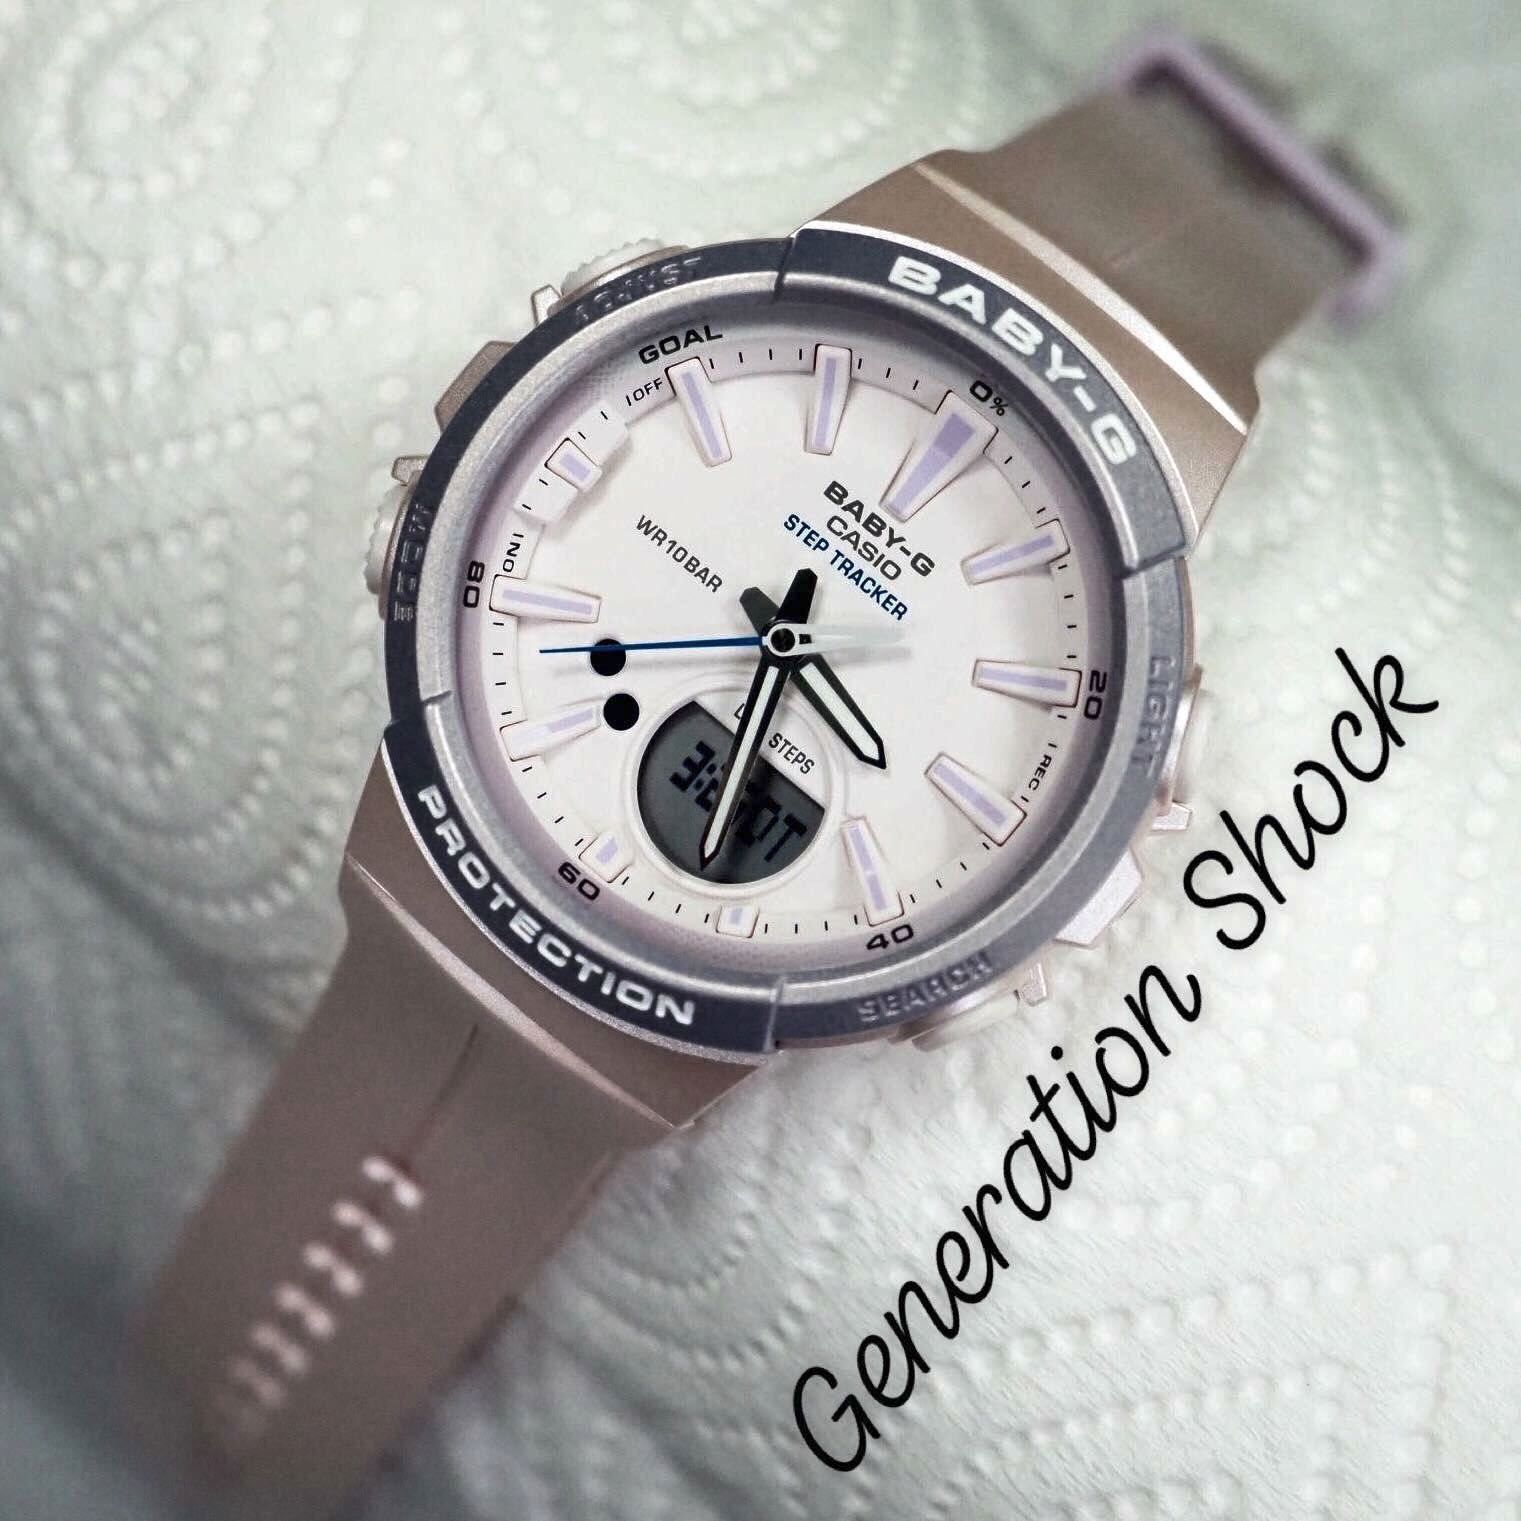 Newarrivals Babyg Casio Sports Watch 1 Year Official Warranty Baby G Bga 230 7b Original 100 Authentic With Step Tracker In Absolutely Toughness Best Gift For